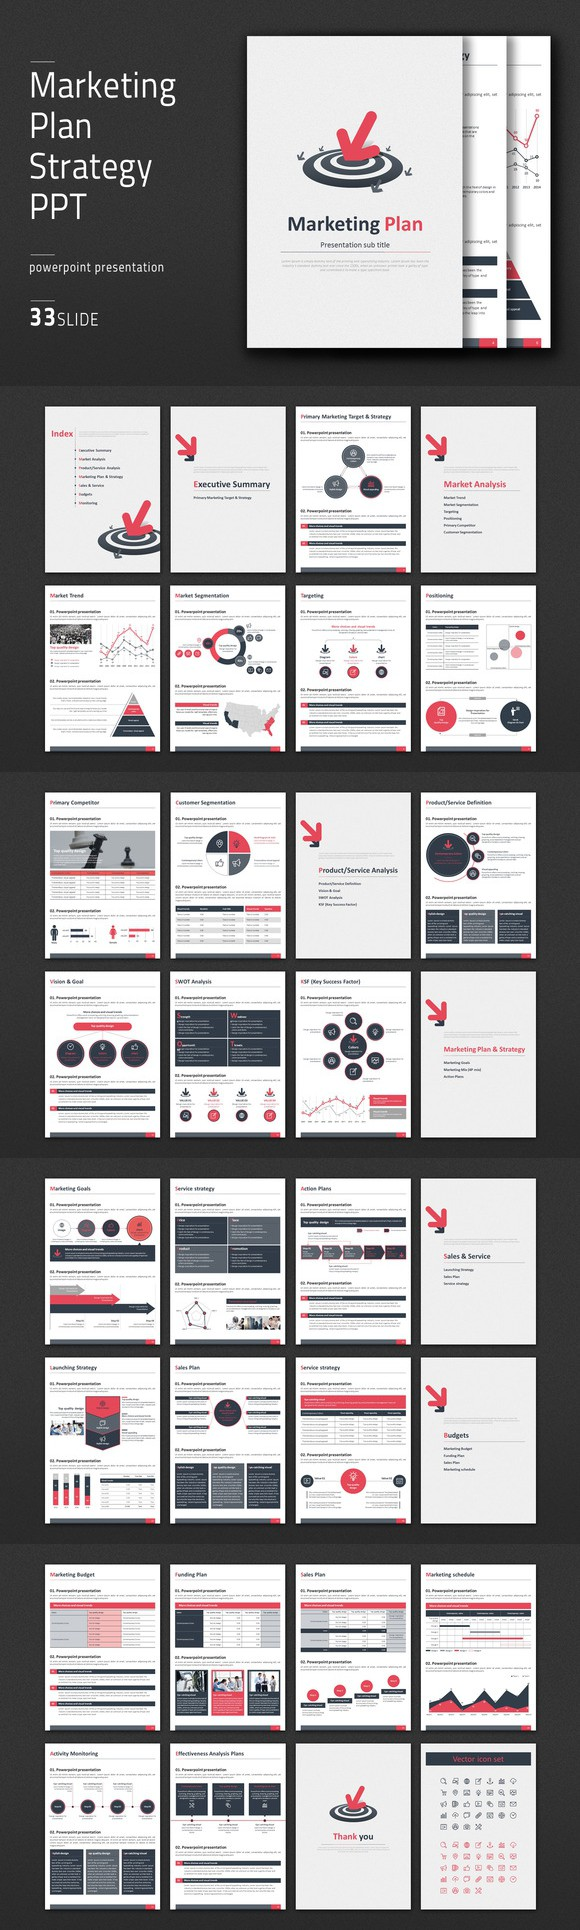 Marketing Plan Strategy PPT Vertical | Presentation templates ...